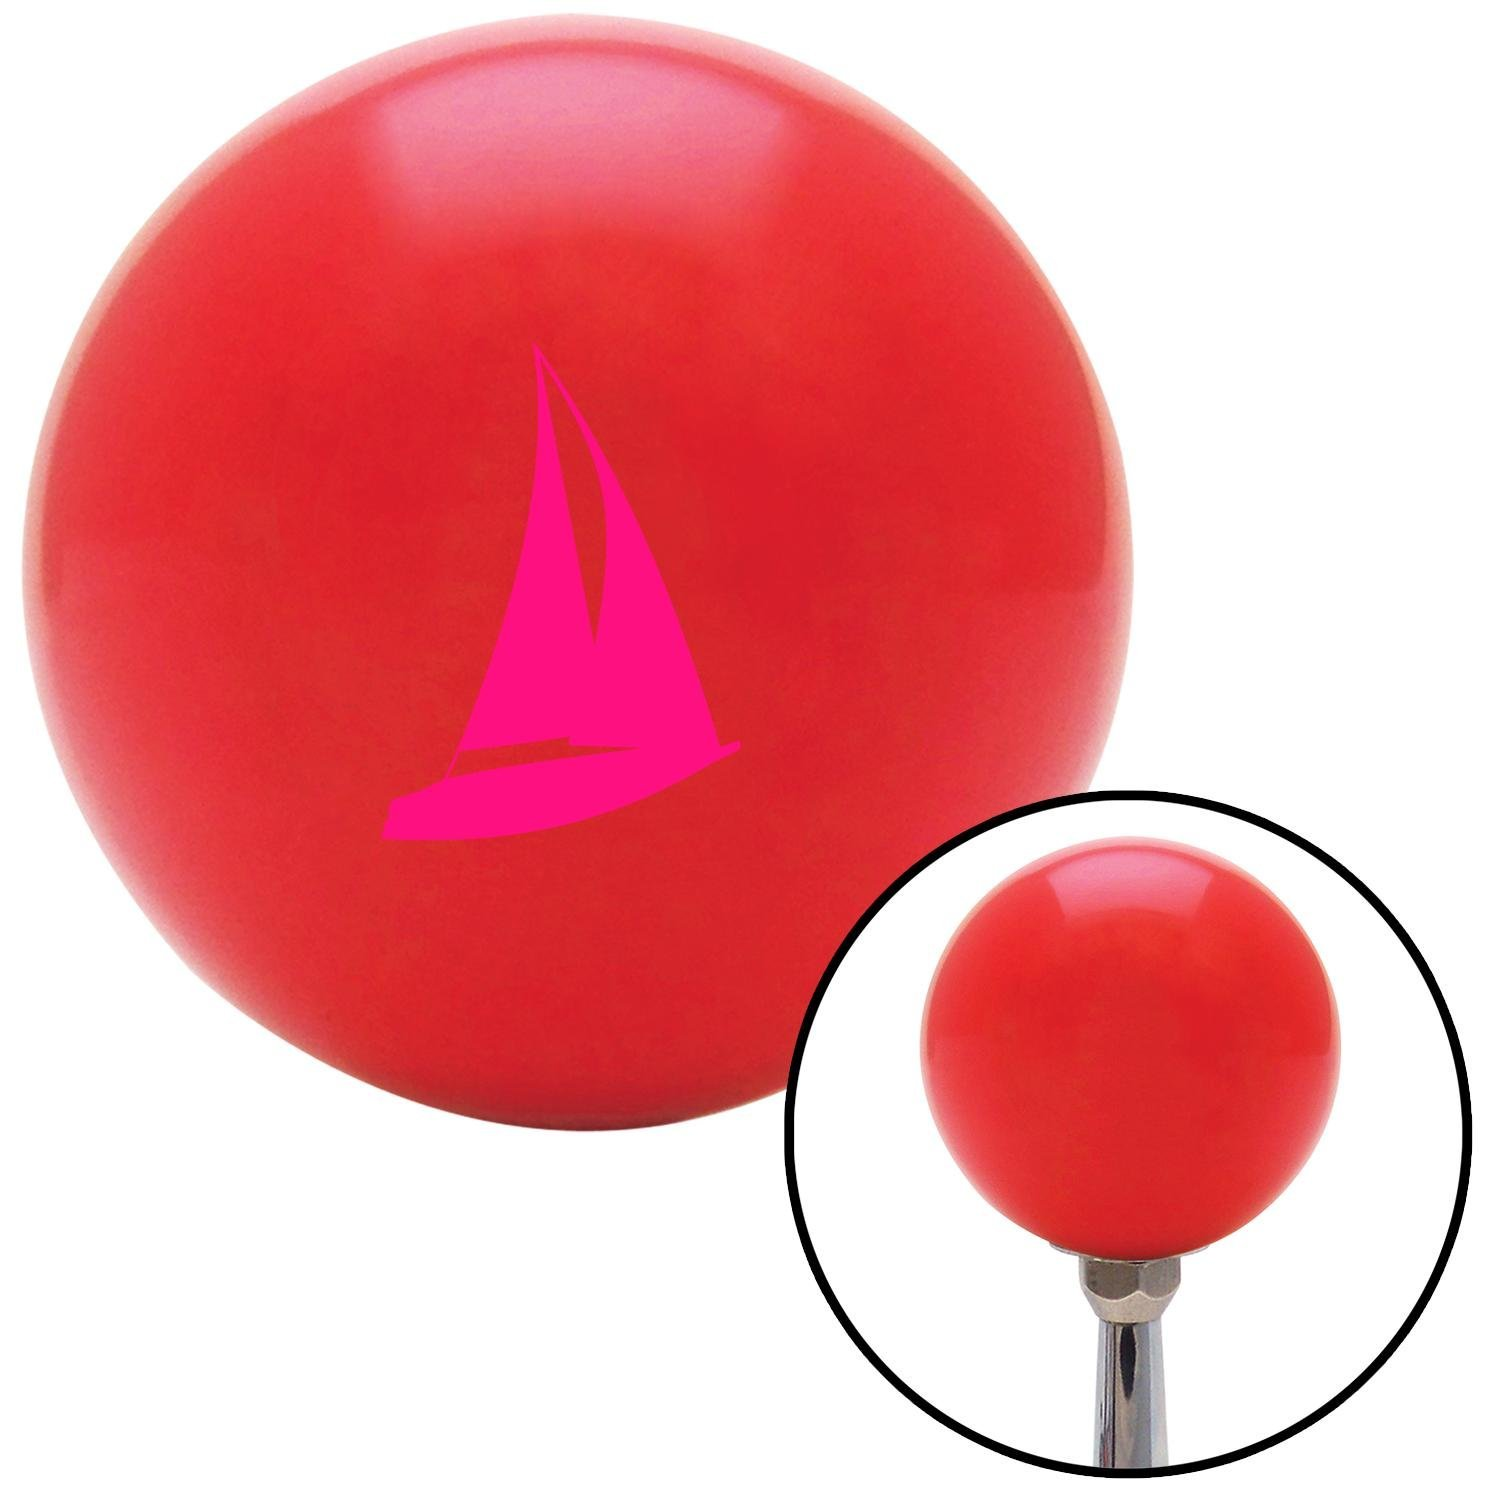 Pink Sailboat American Shifter 97537 Red Shift Knob with M16 x 1.5 Insert